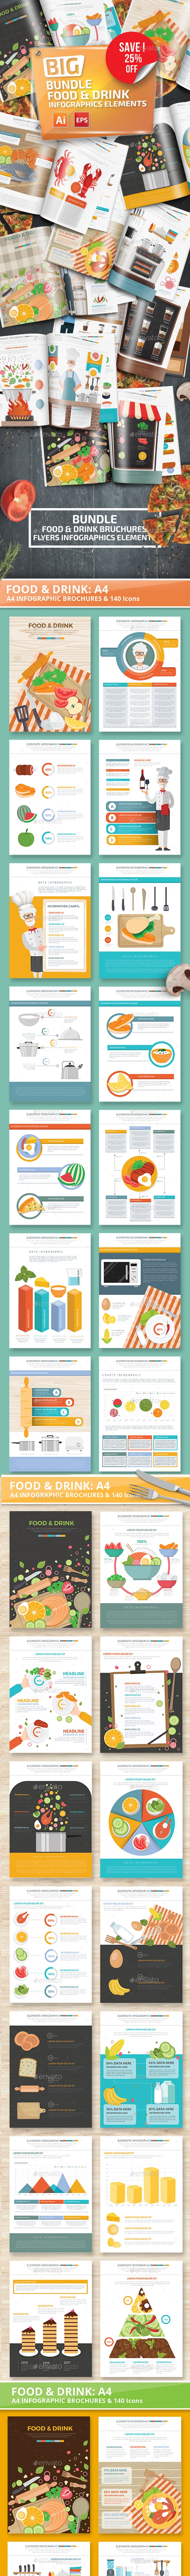 Bundle Food & Drink Infographics - Infographics